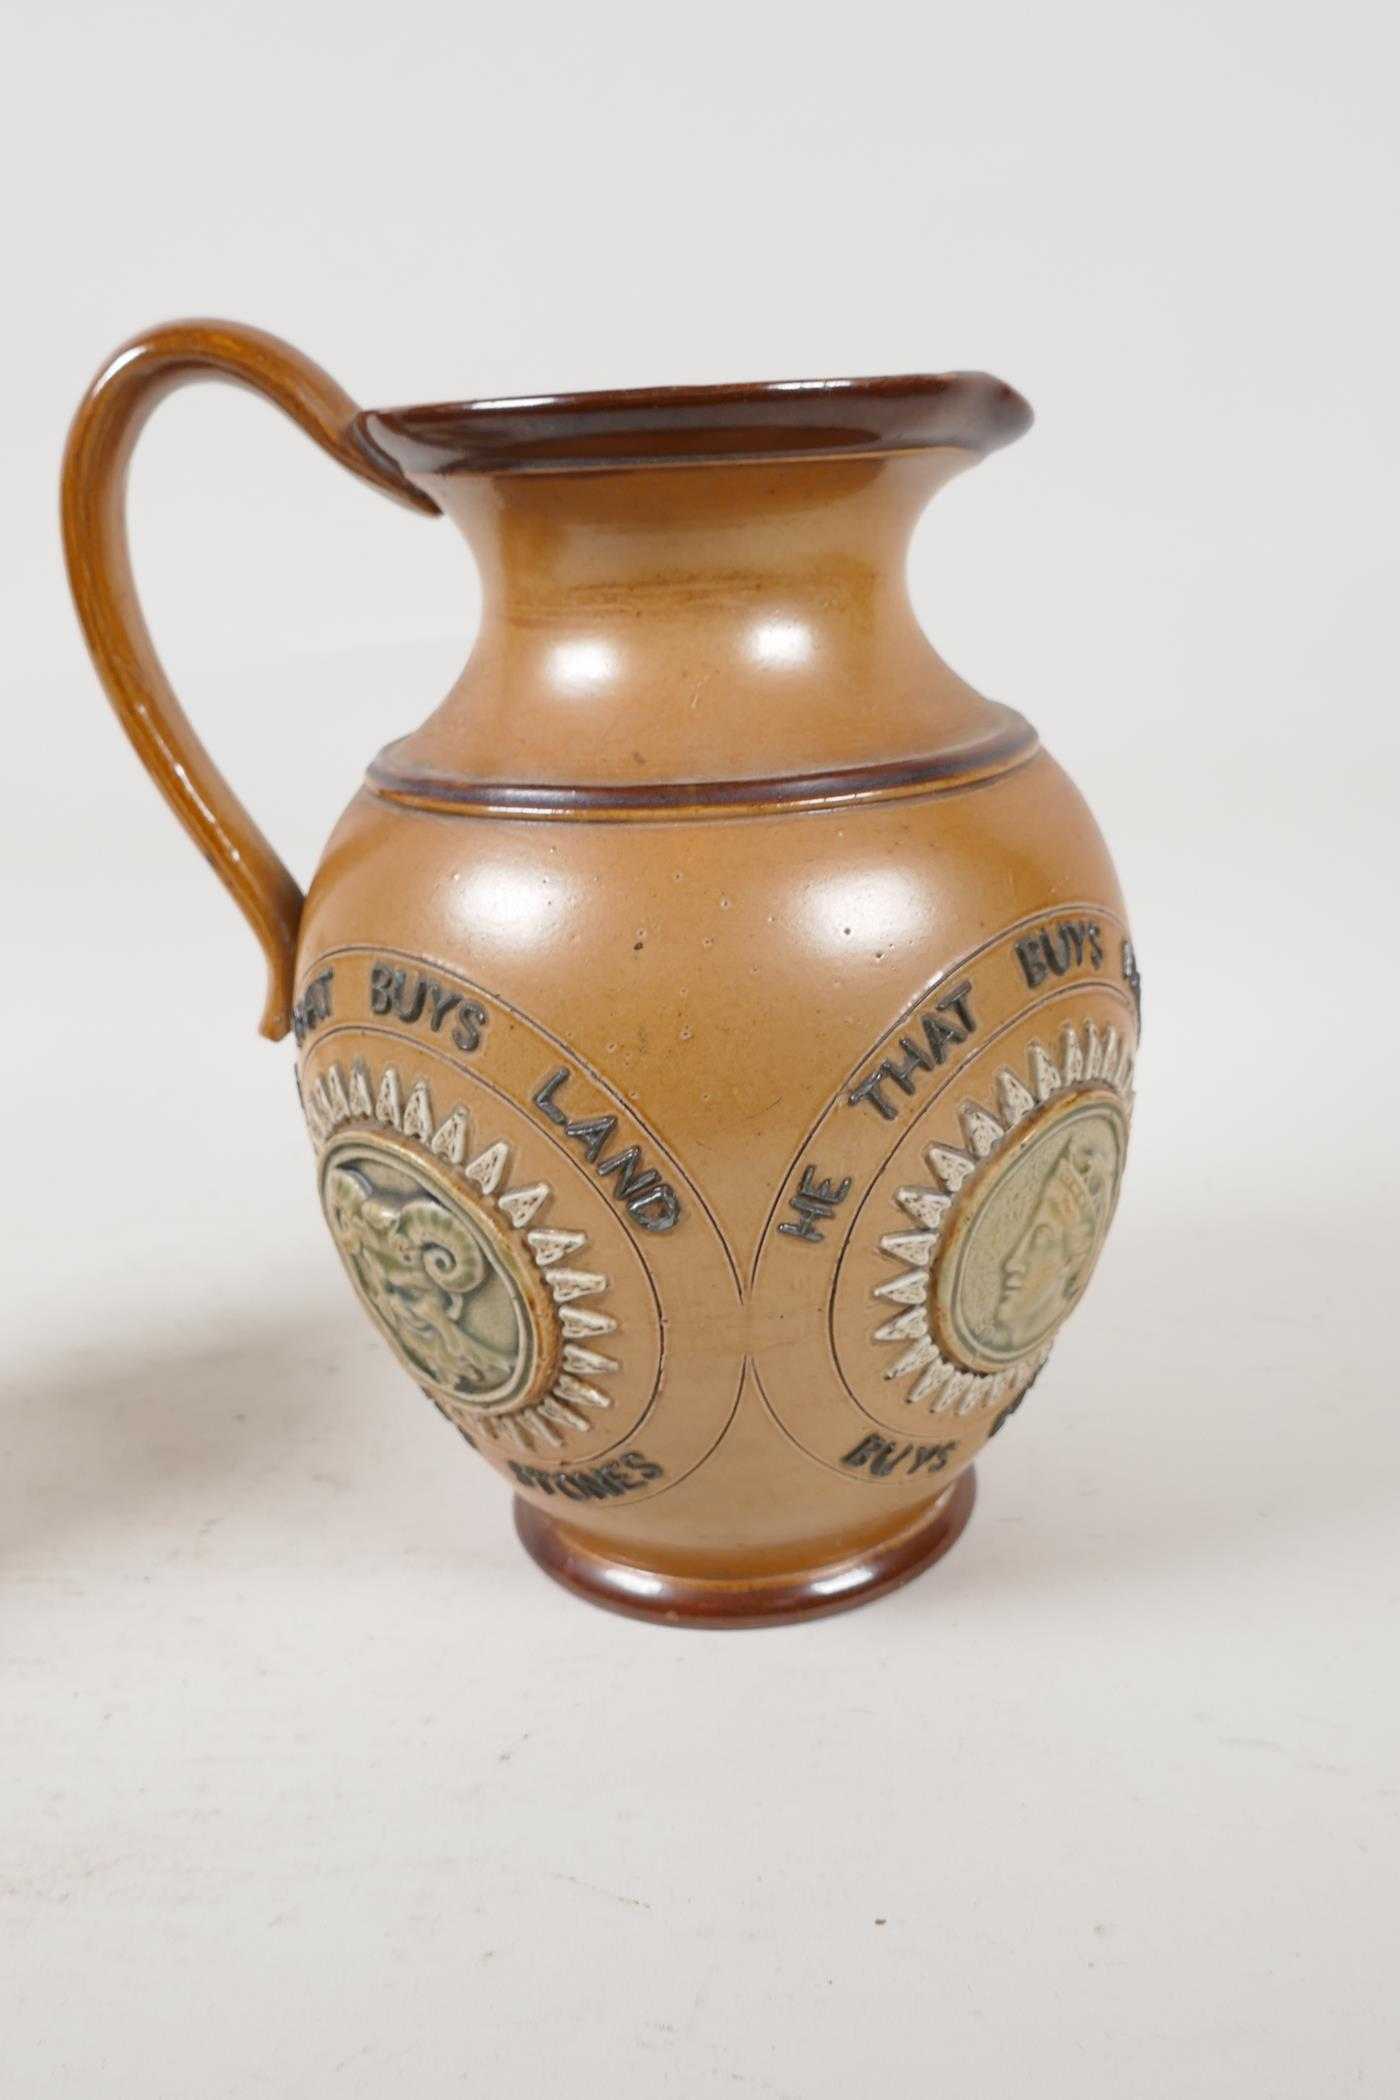 A Doulton Lambeth stoneware jug bearing the legend 'He that buys good ale' embossed with various - Image 4 of 5